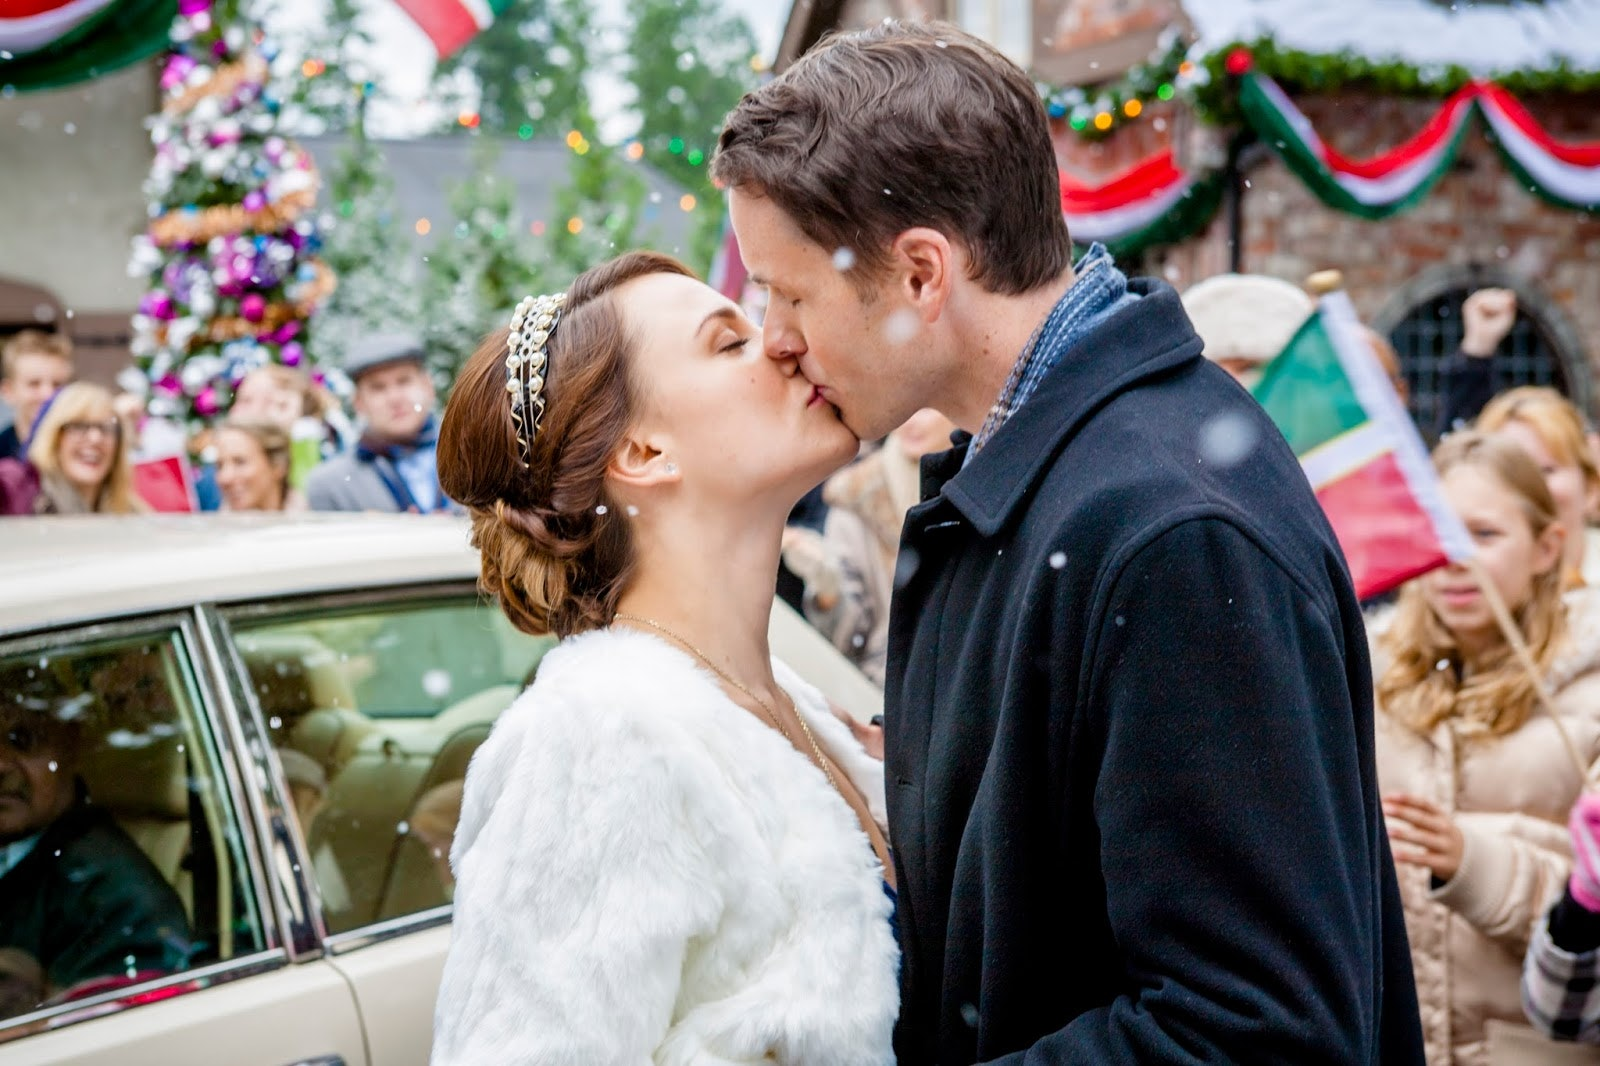 the hallmark countdown to christmas schedule will make sure youre in the holiday spirit all month long